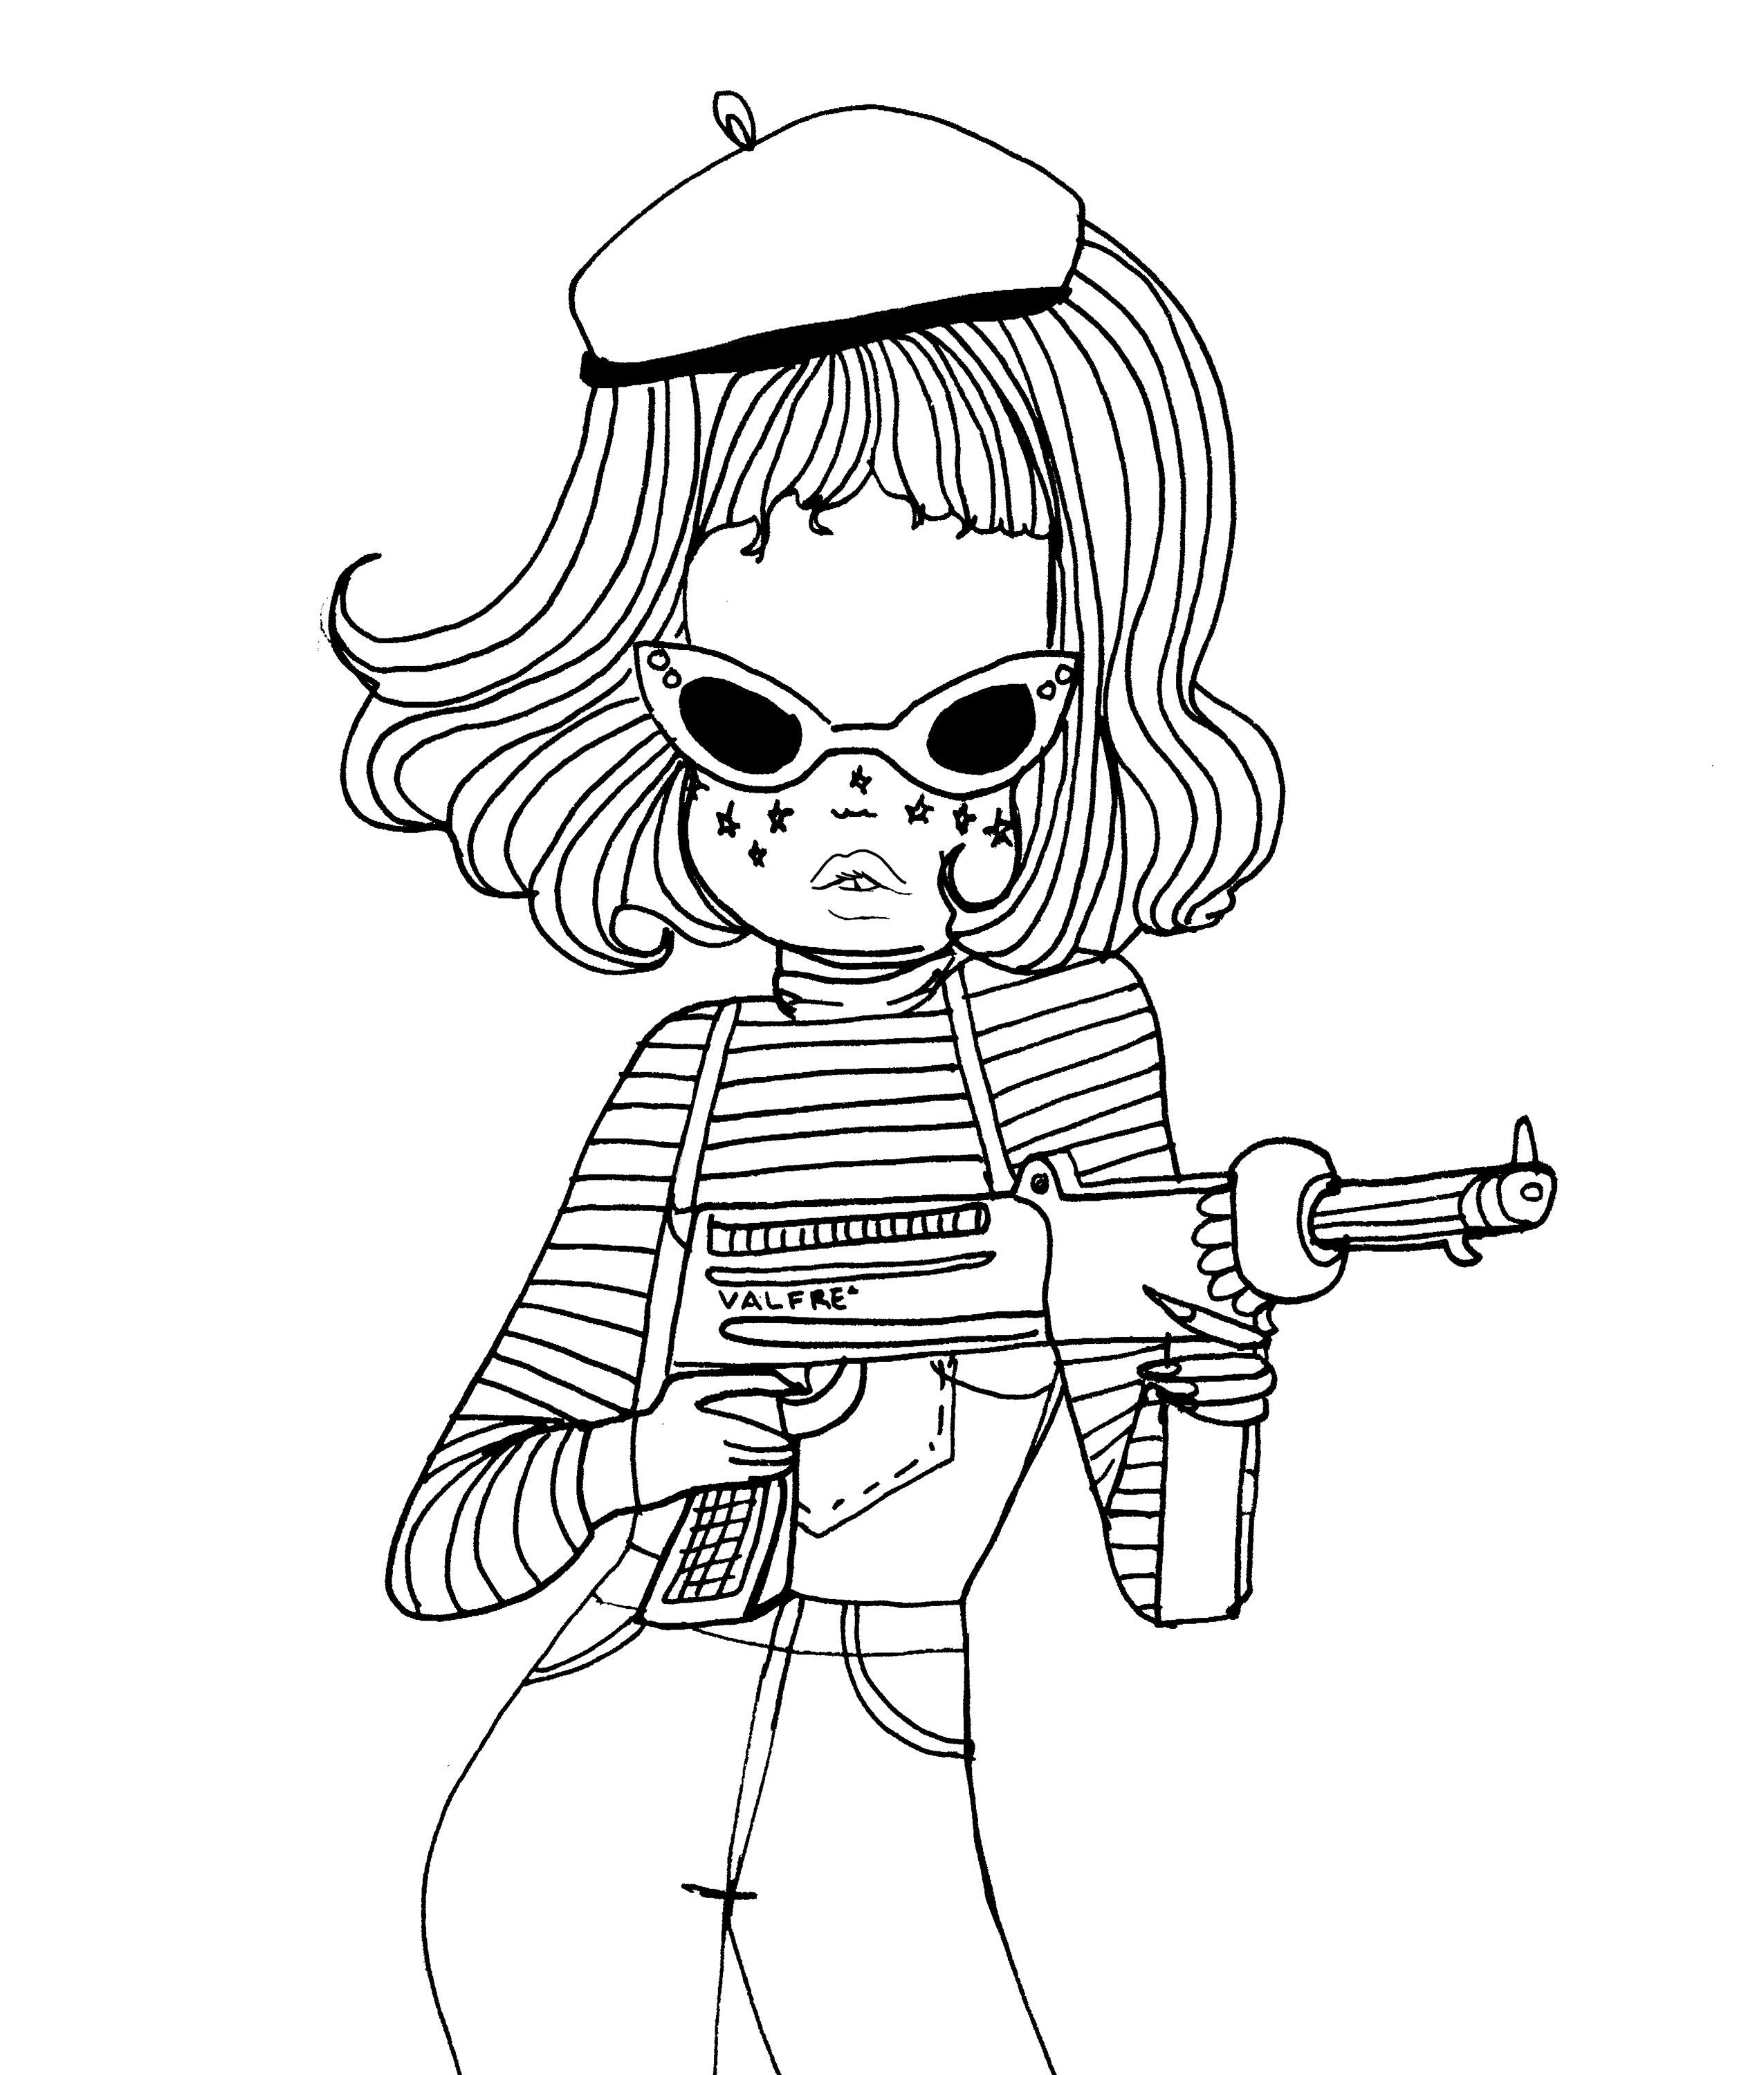 2550x3000 Metralleta Valfre Coloring Page Valfre